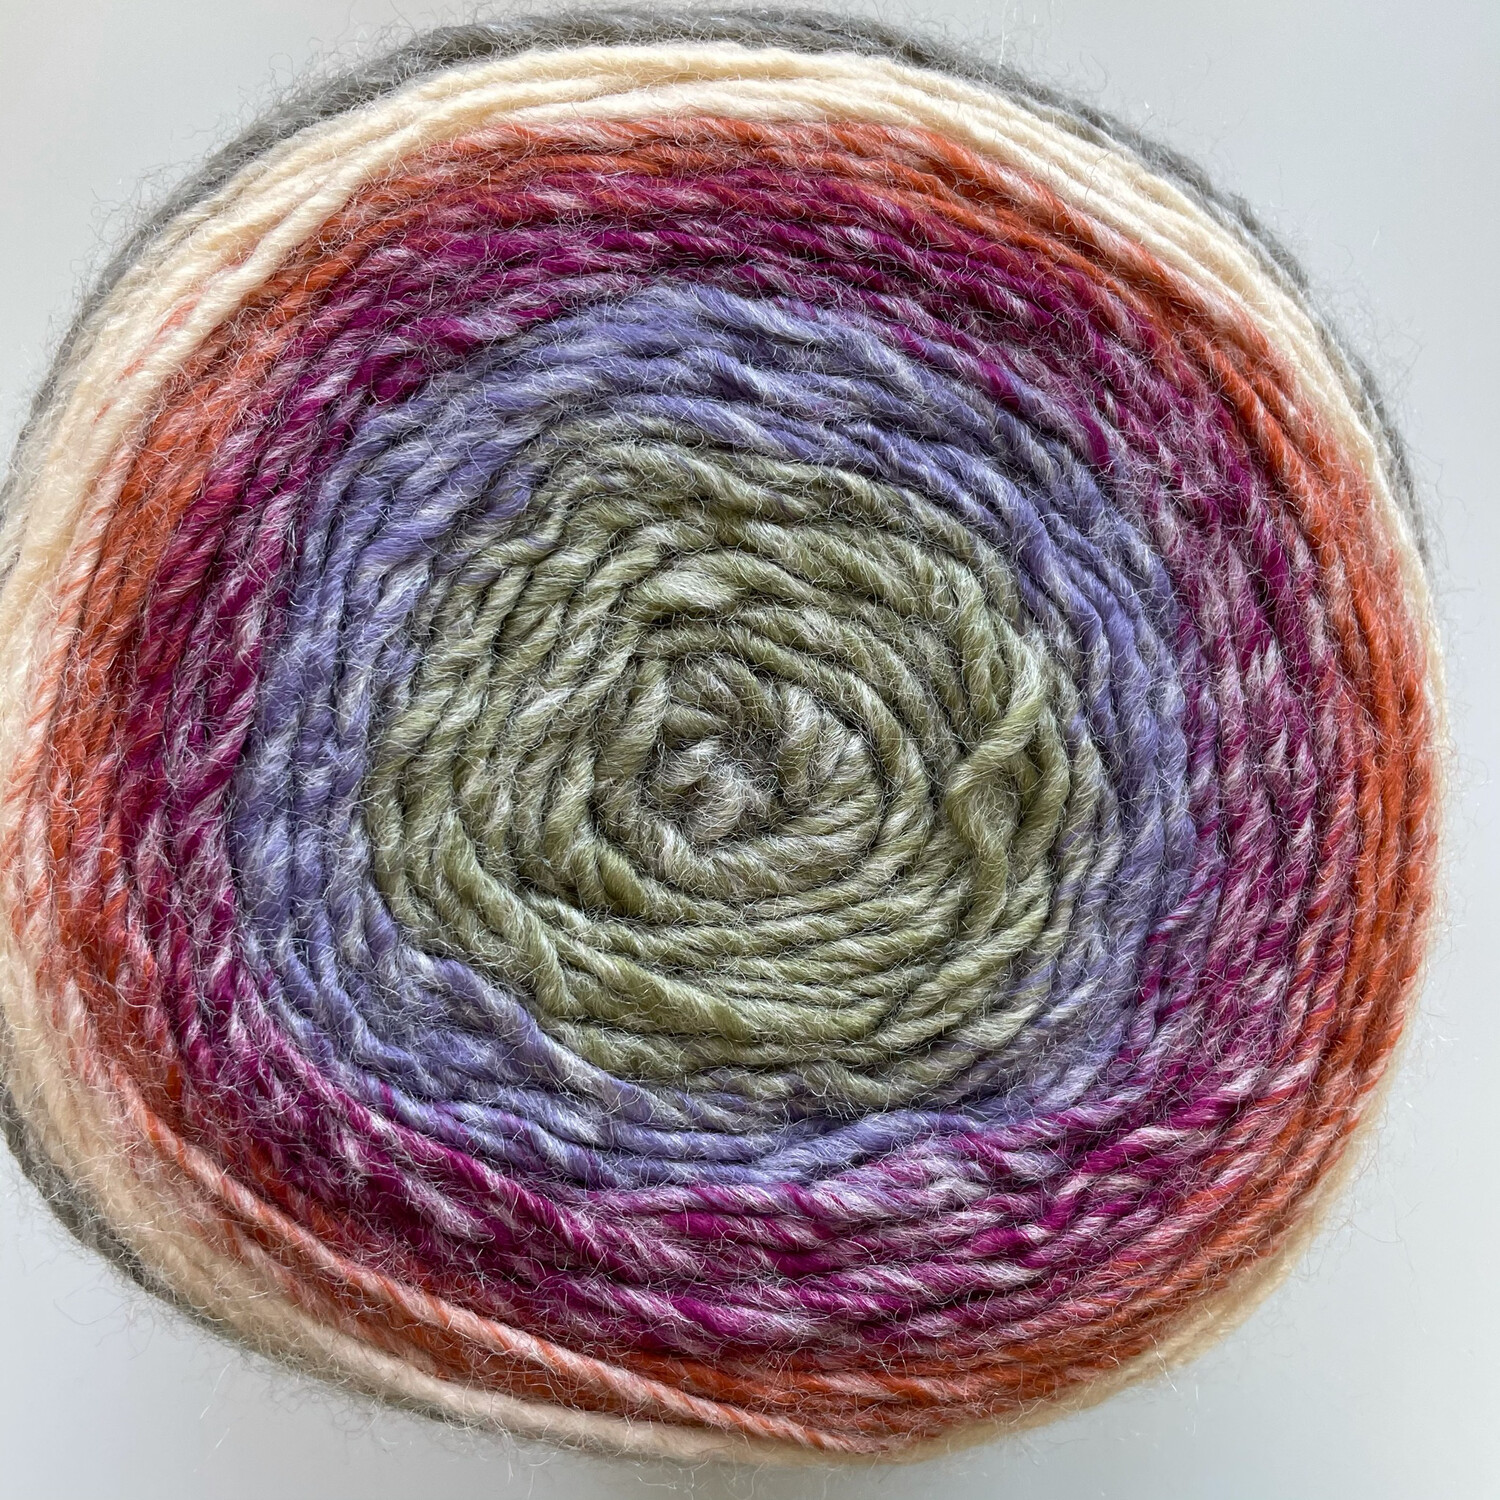 King Cole Curiosity Cake Double Knitting DK Yarn - Mulberry 2897